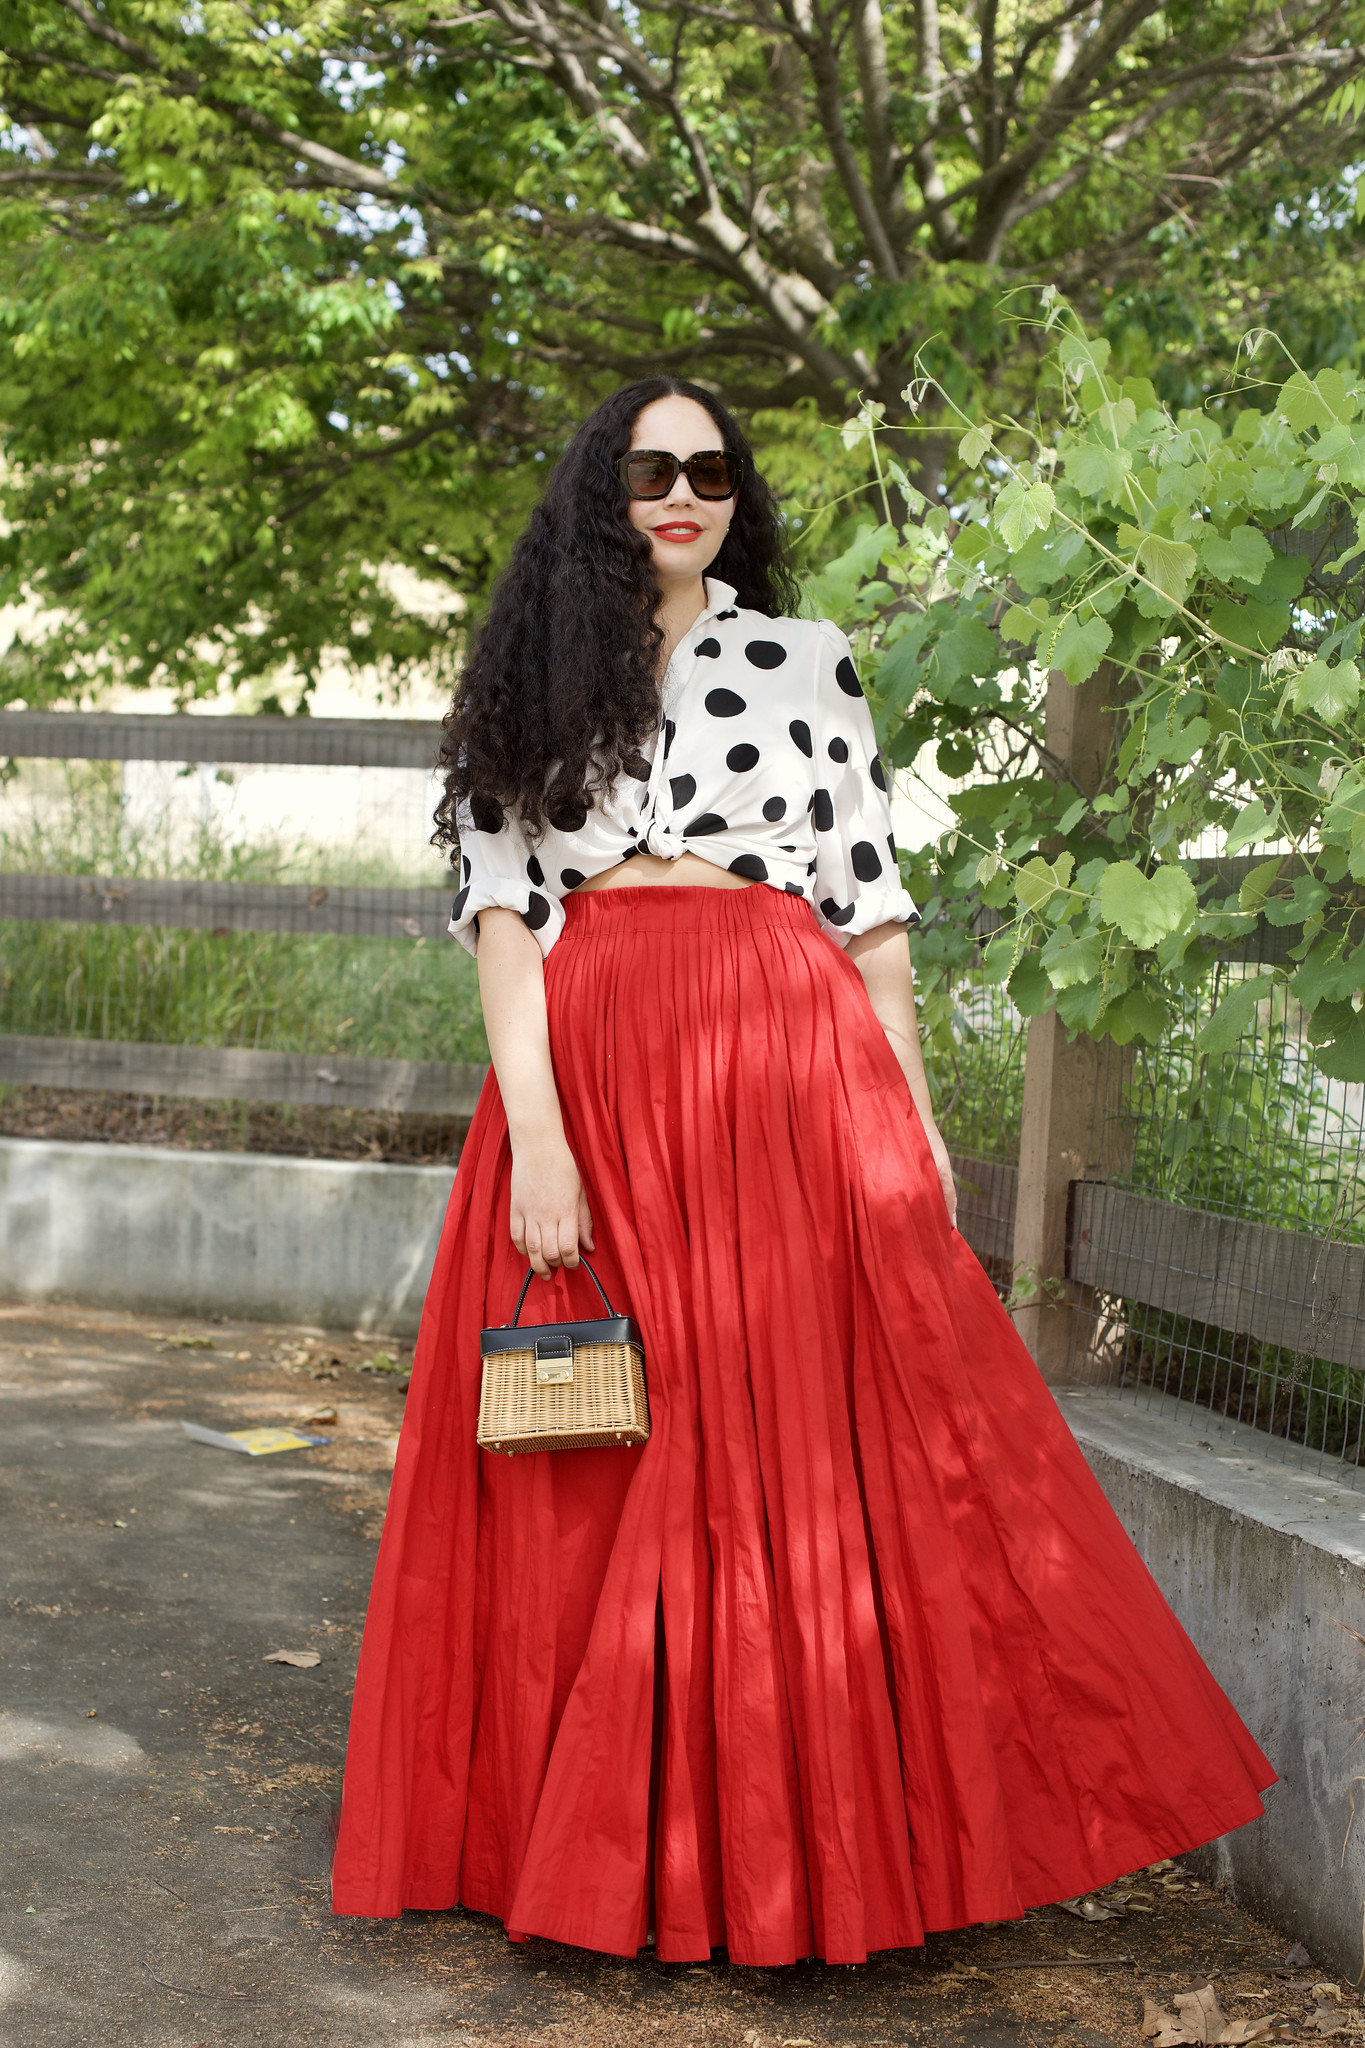 Wearing the Maxi Skirt of my Dreams | Girl with Curves